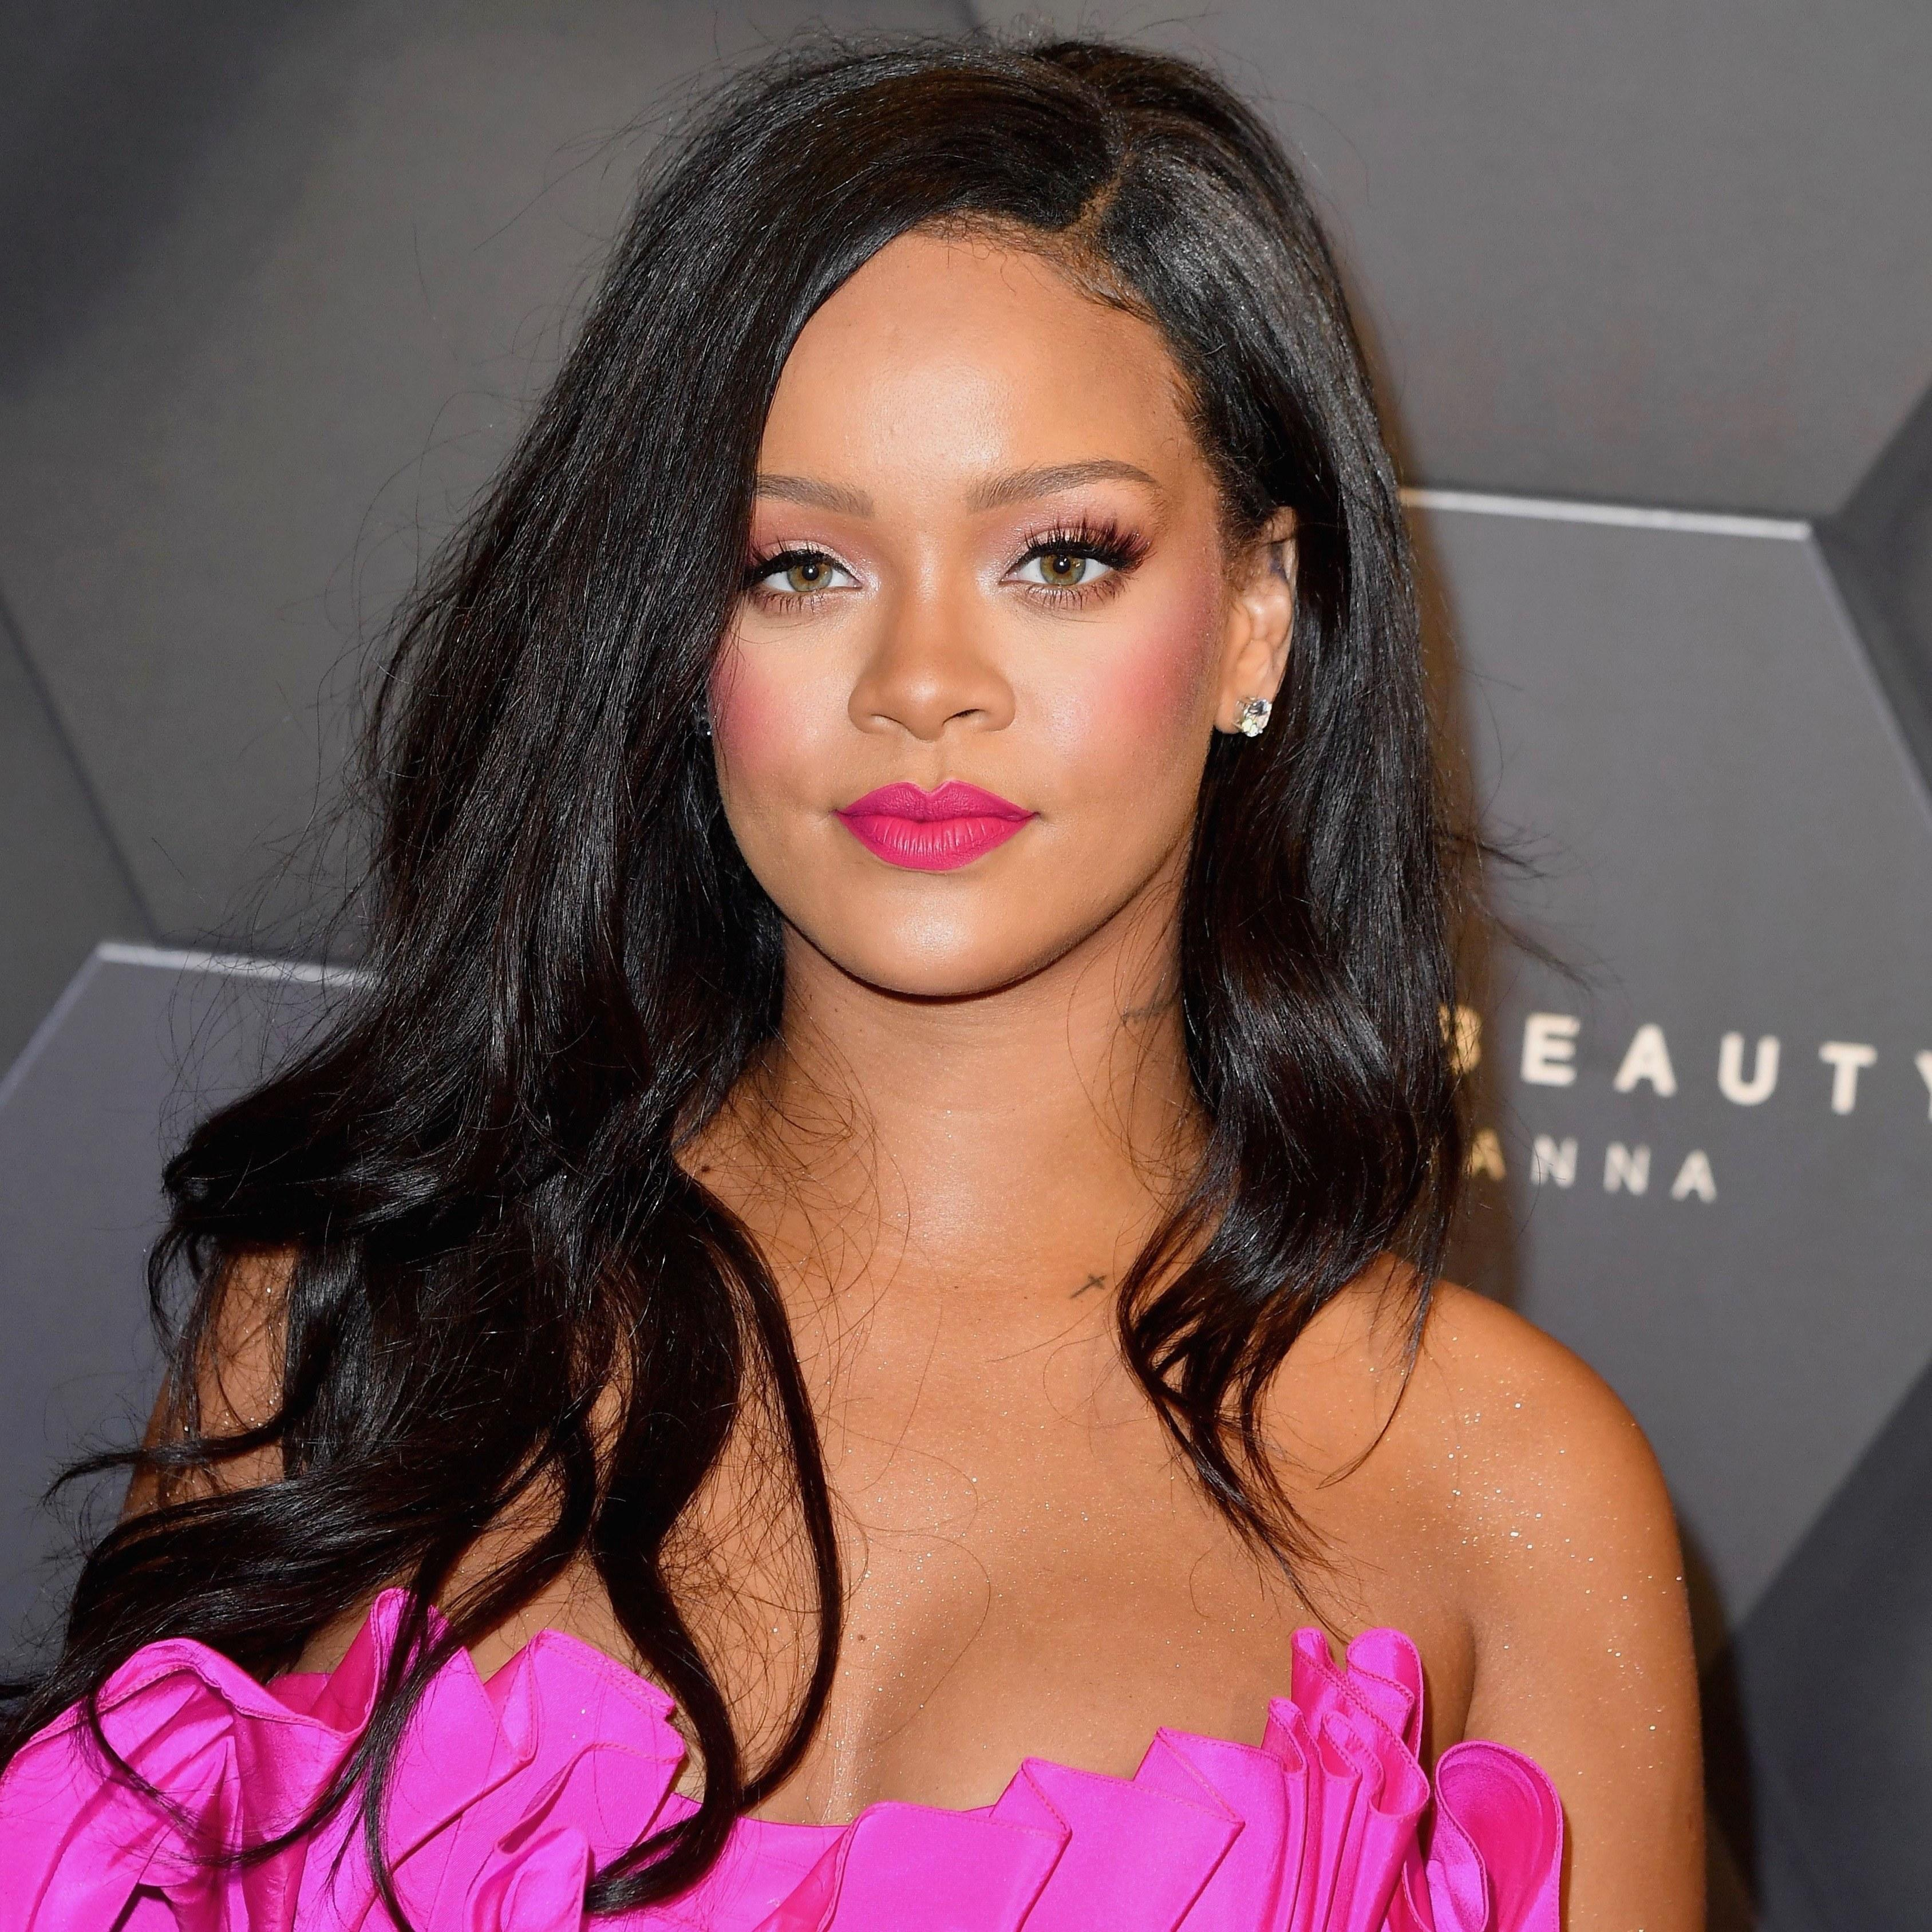 All Pink Everything: Rihanna Steps Out In All Pink Everything—and A Leg Reveal